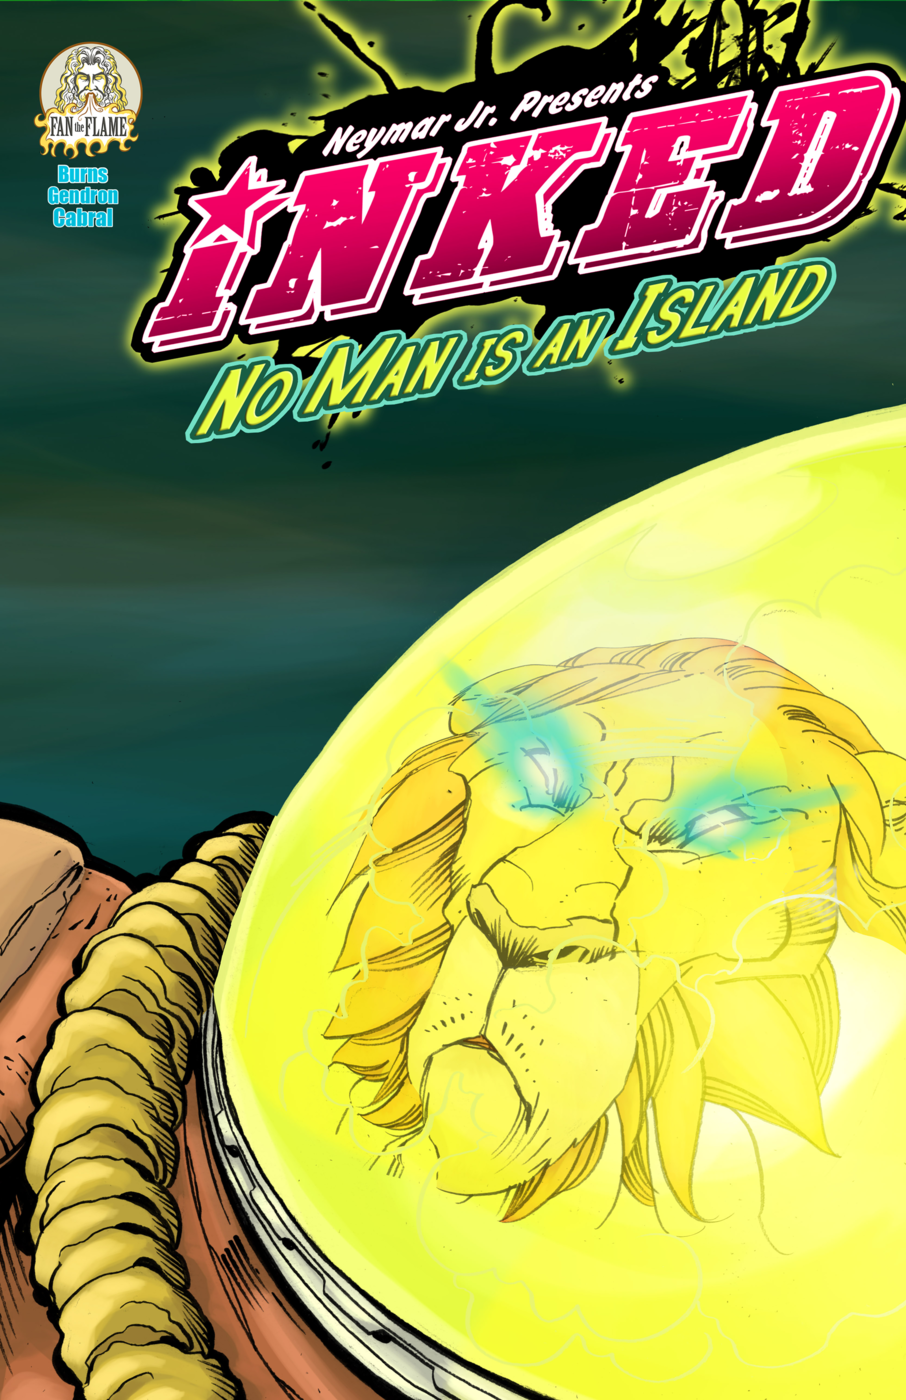 Inked: No Man Is An Island #1.1